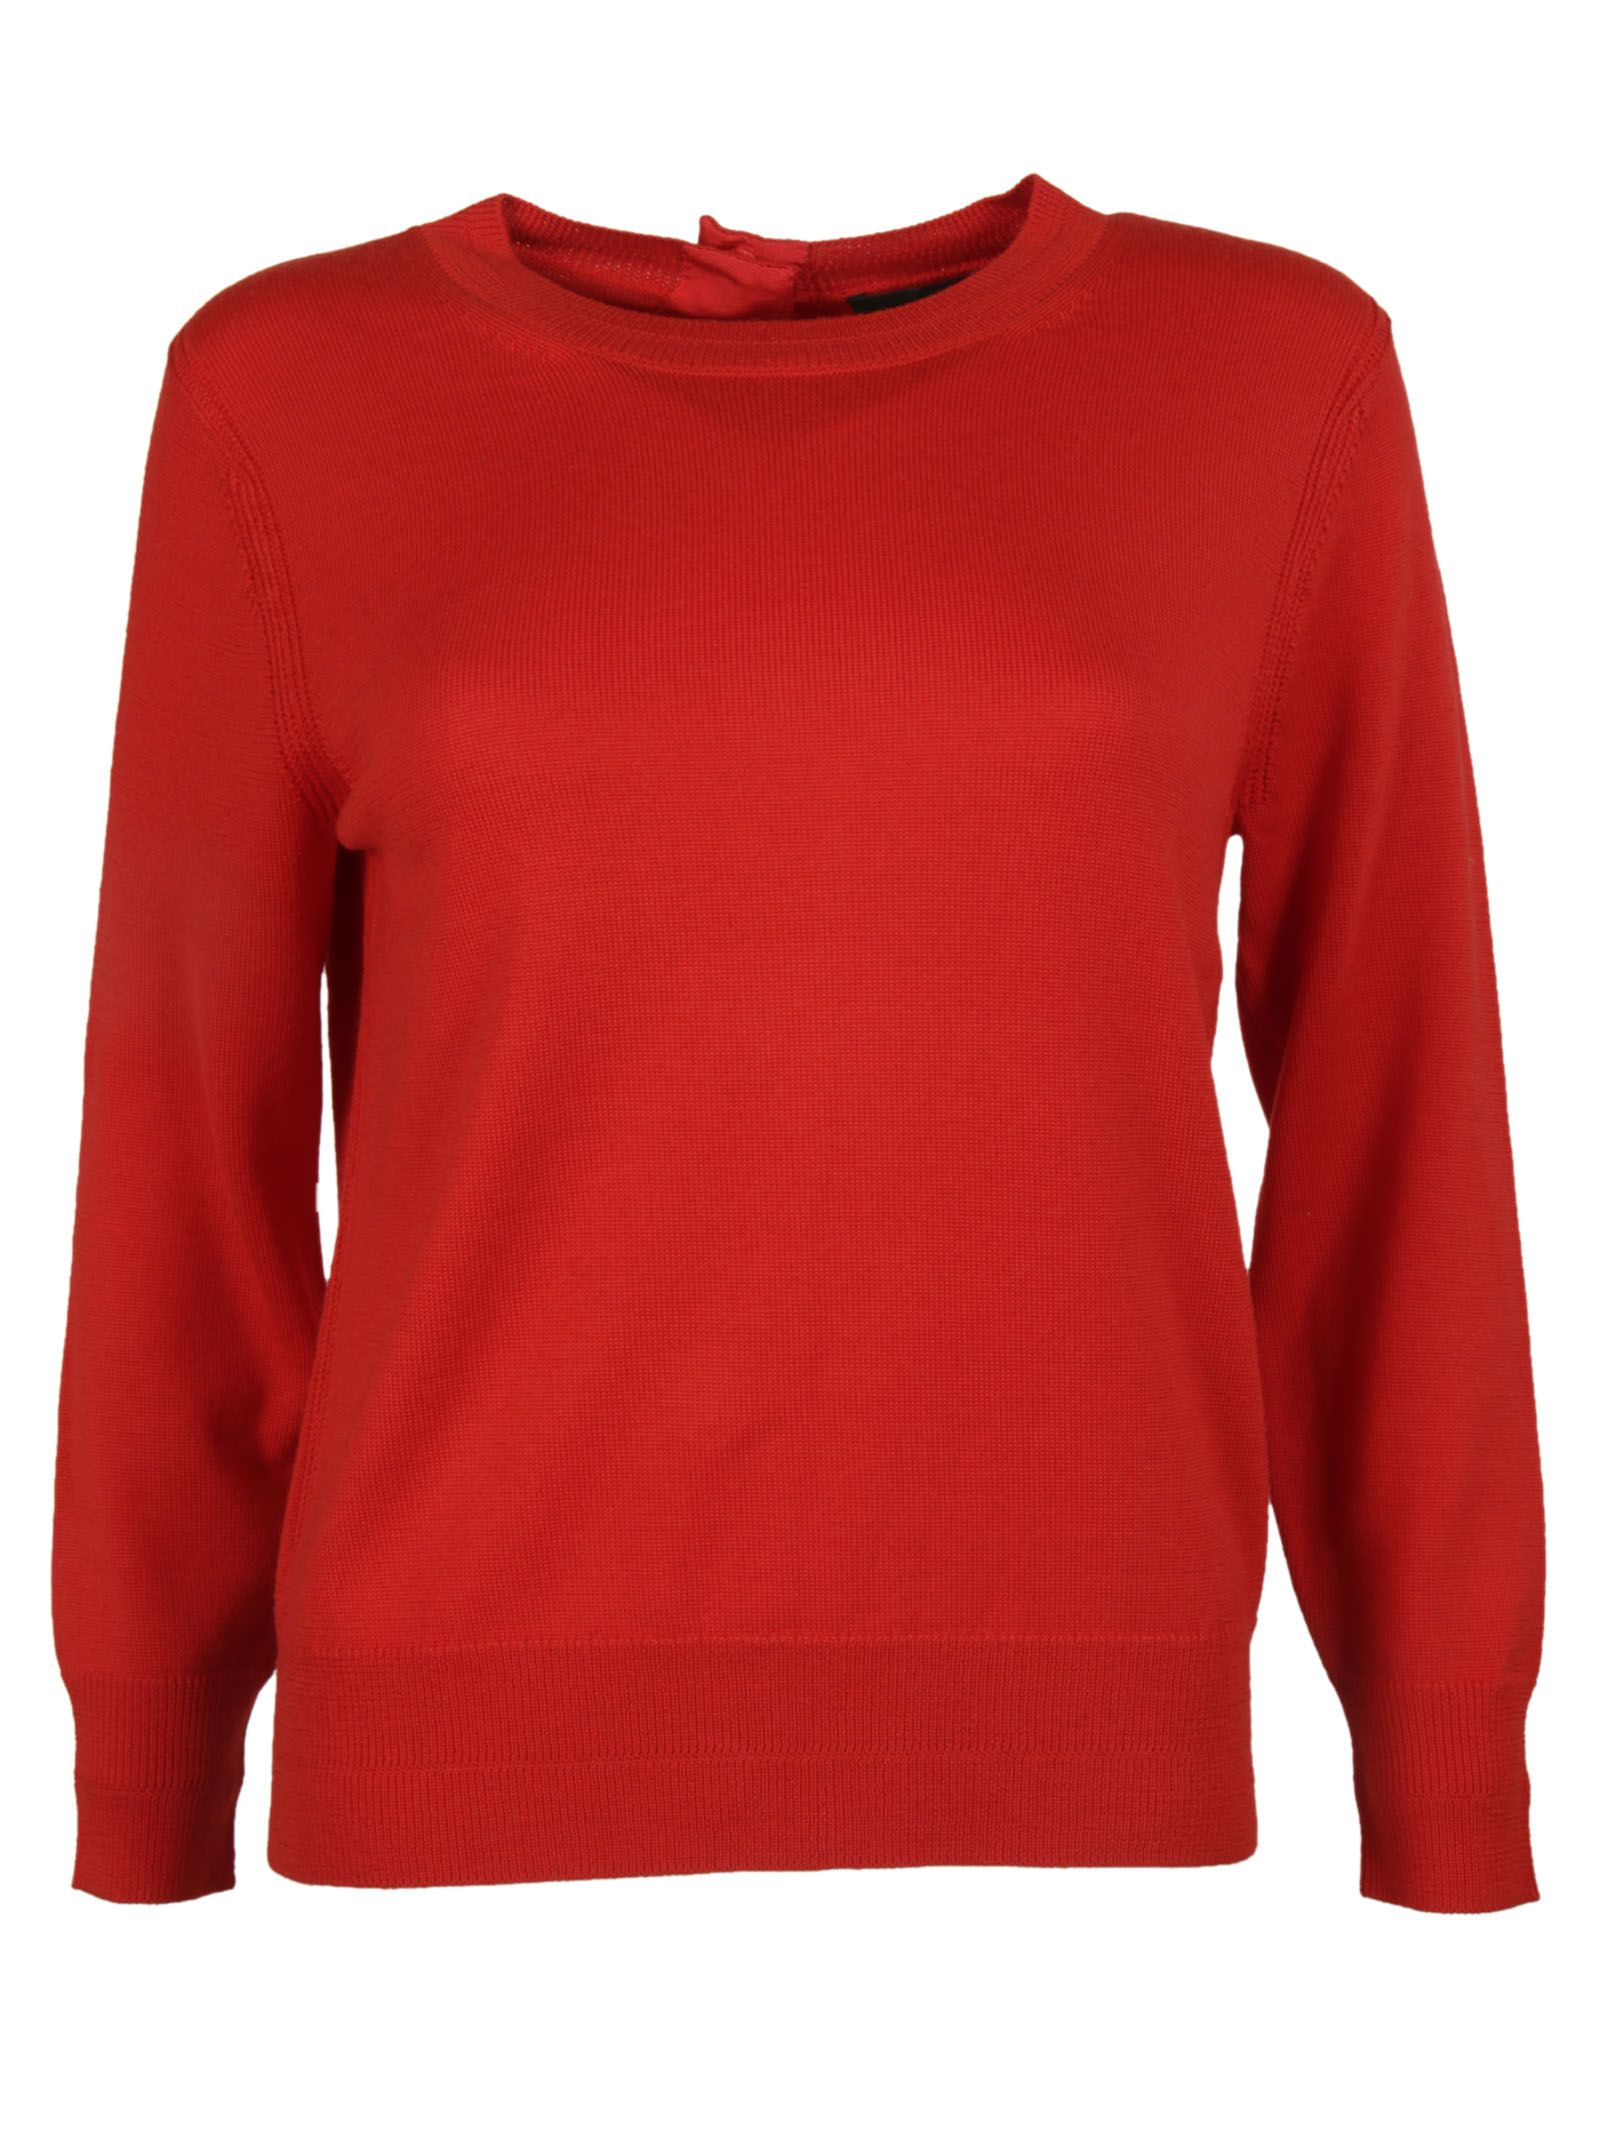 marc jacobs female 250960 red back buttoned crewneck